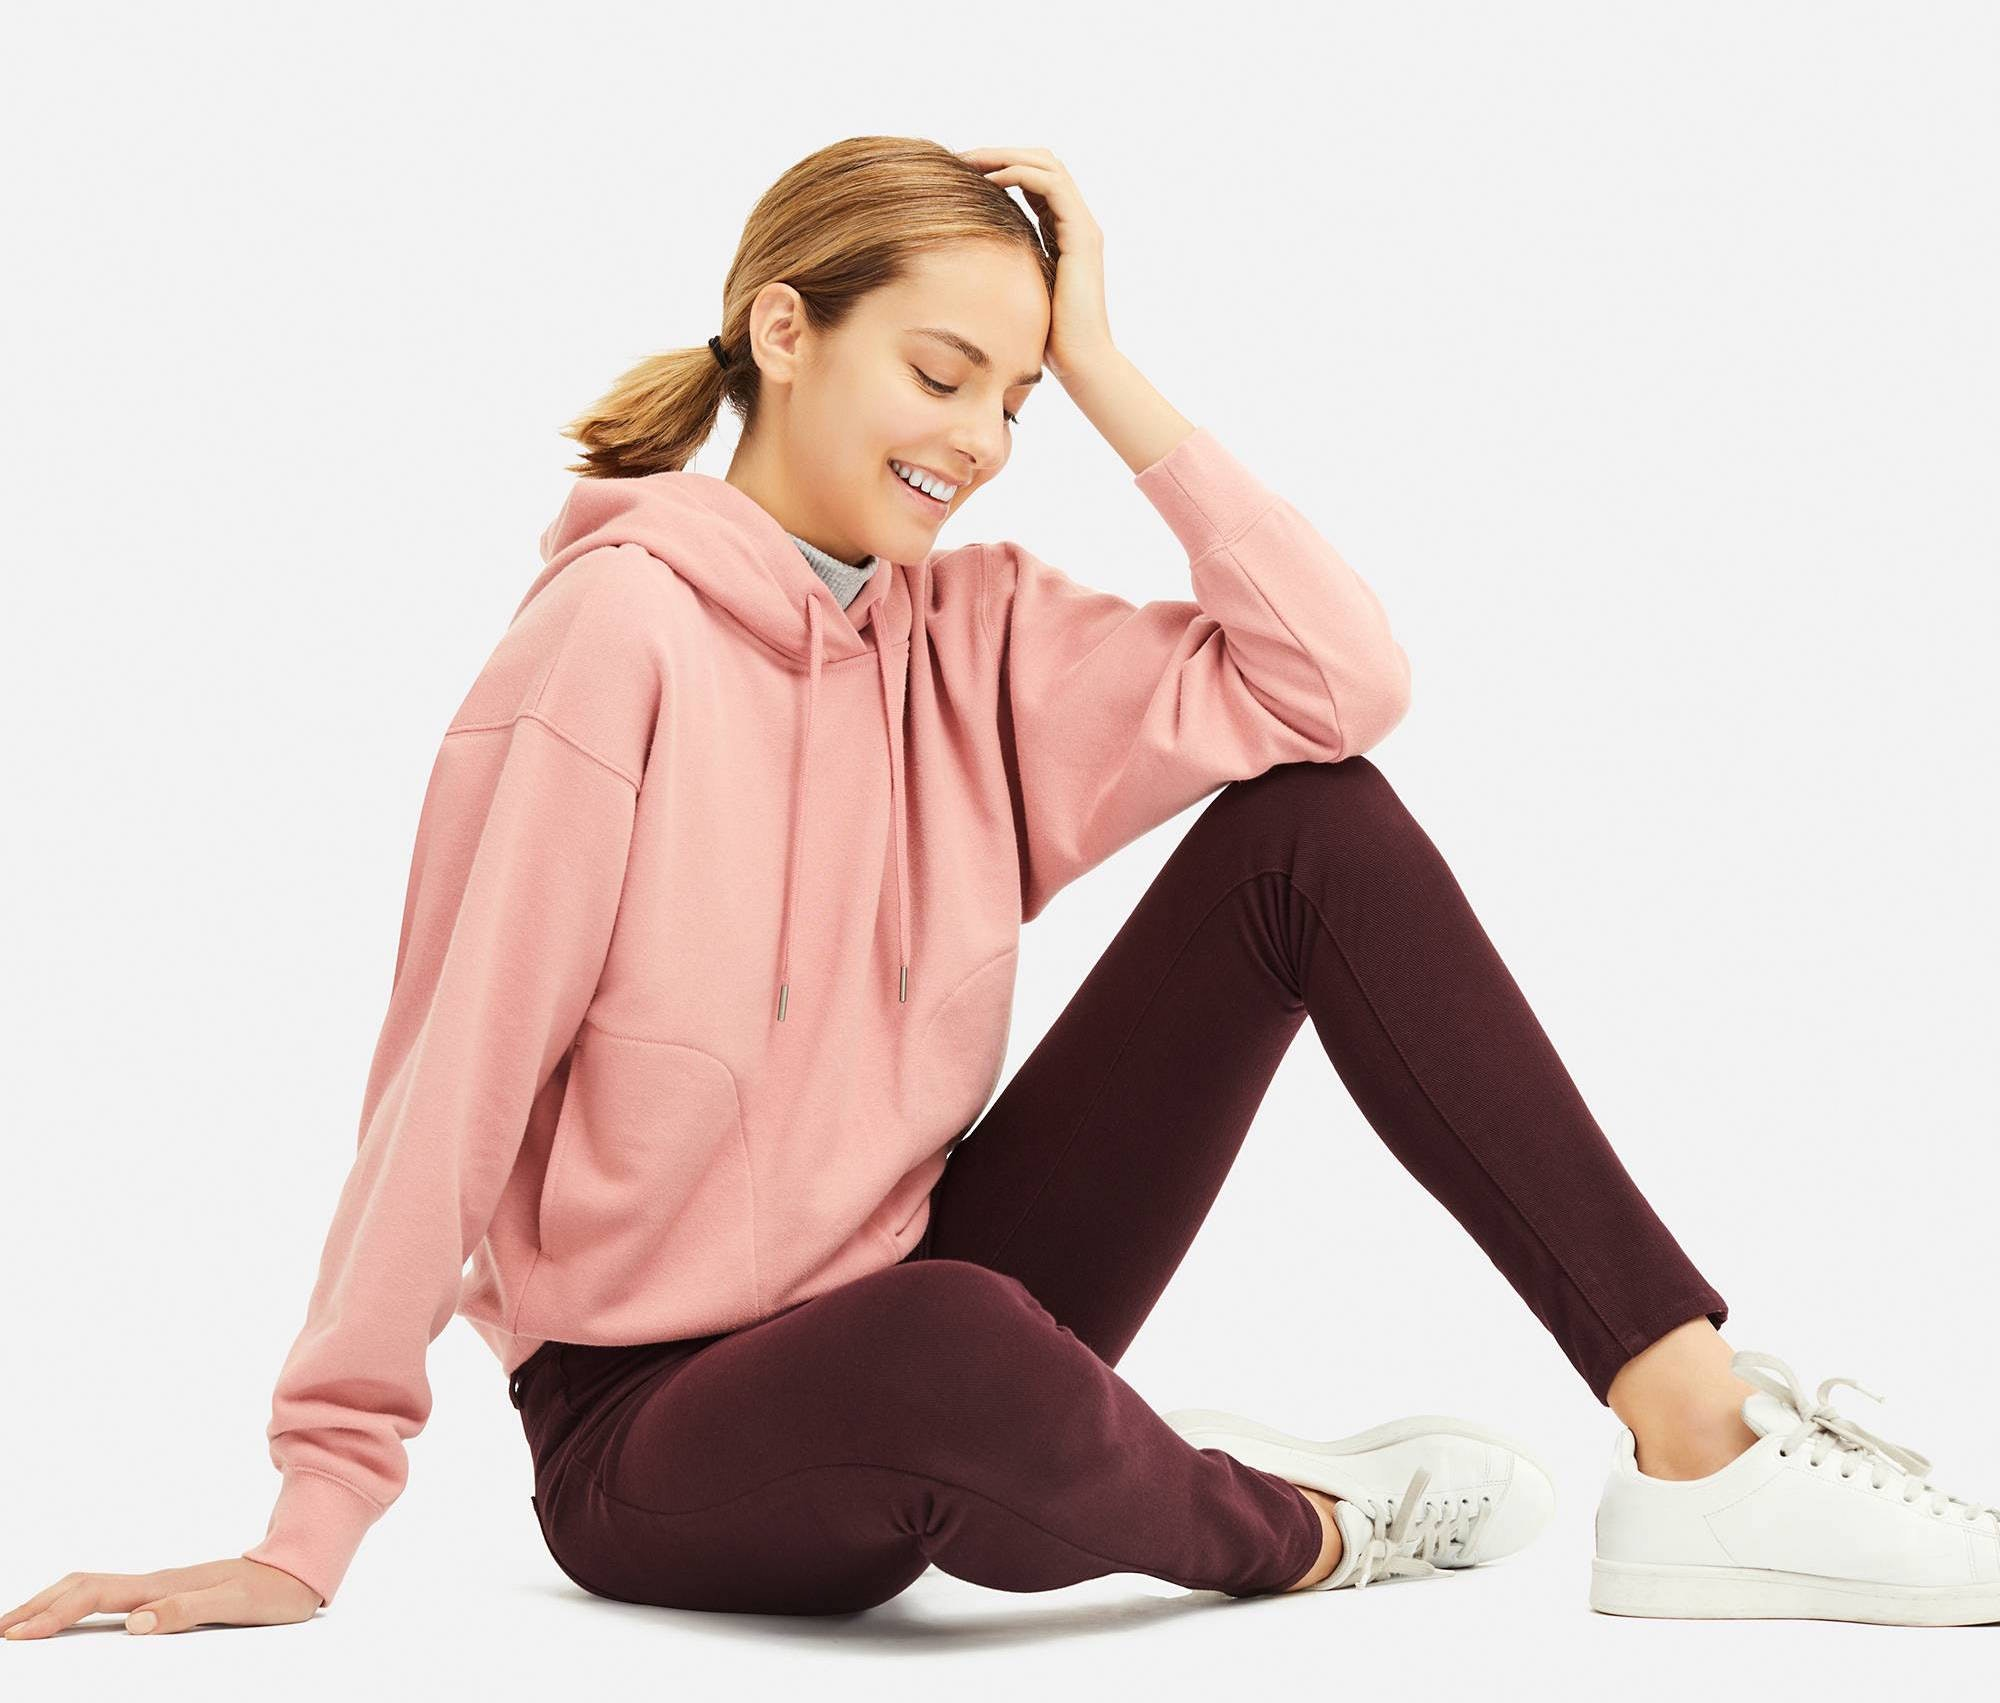 ae71bd9b6daea2 Uniqlo's Sale On Heattech Means Winter Essentials Start At $10